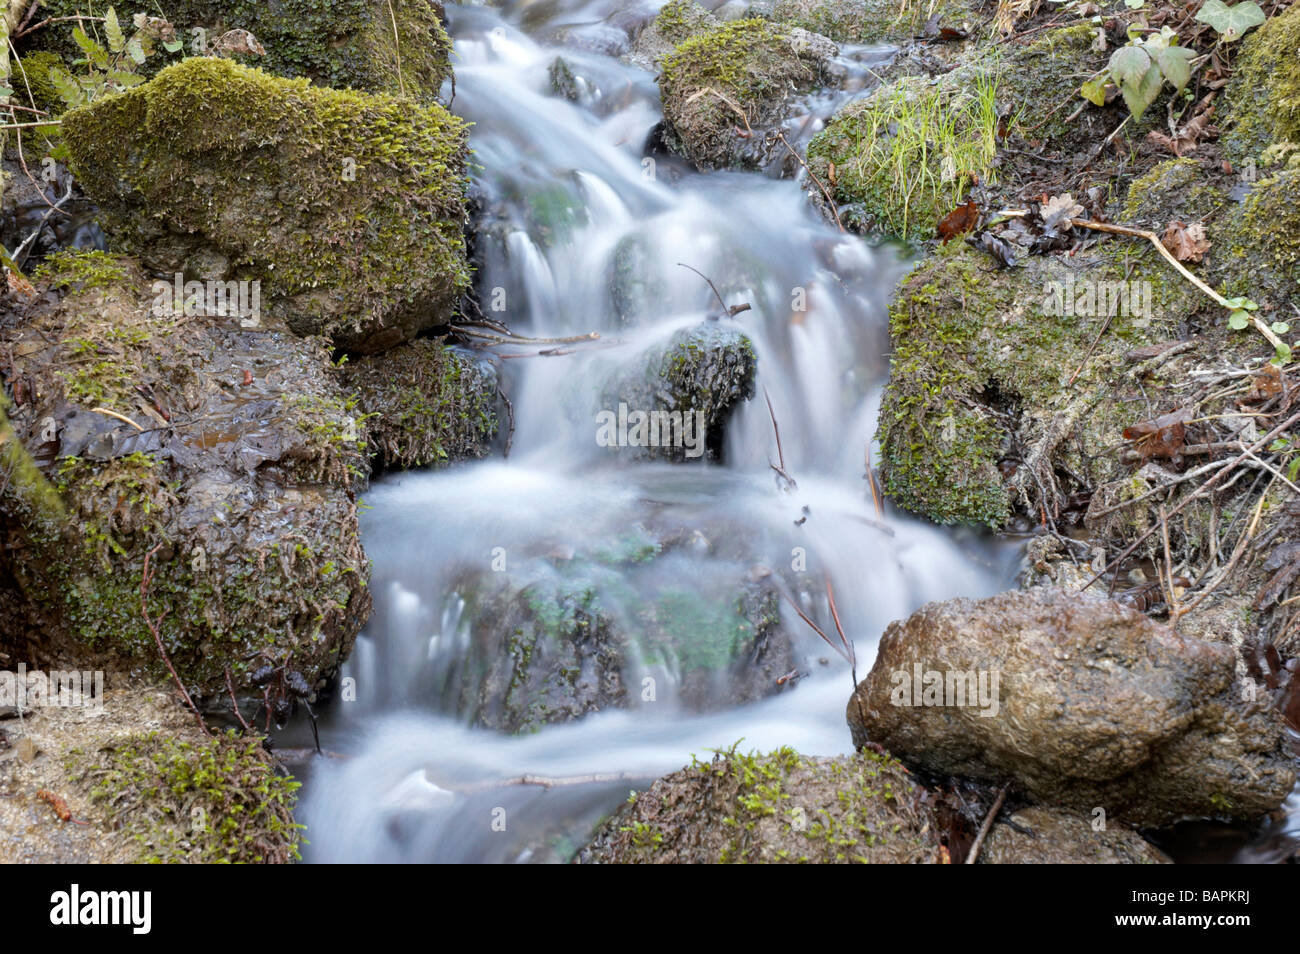 A Small Waterfall In Kent England Stock Photo Royalty Free Image 23855430 Alamy